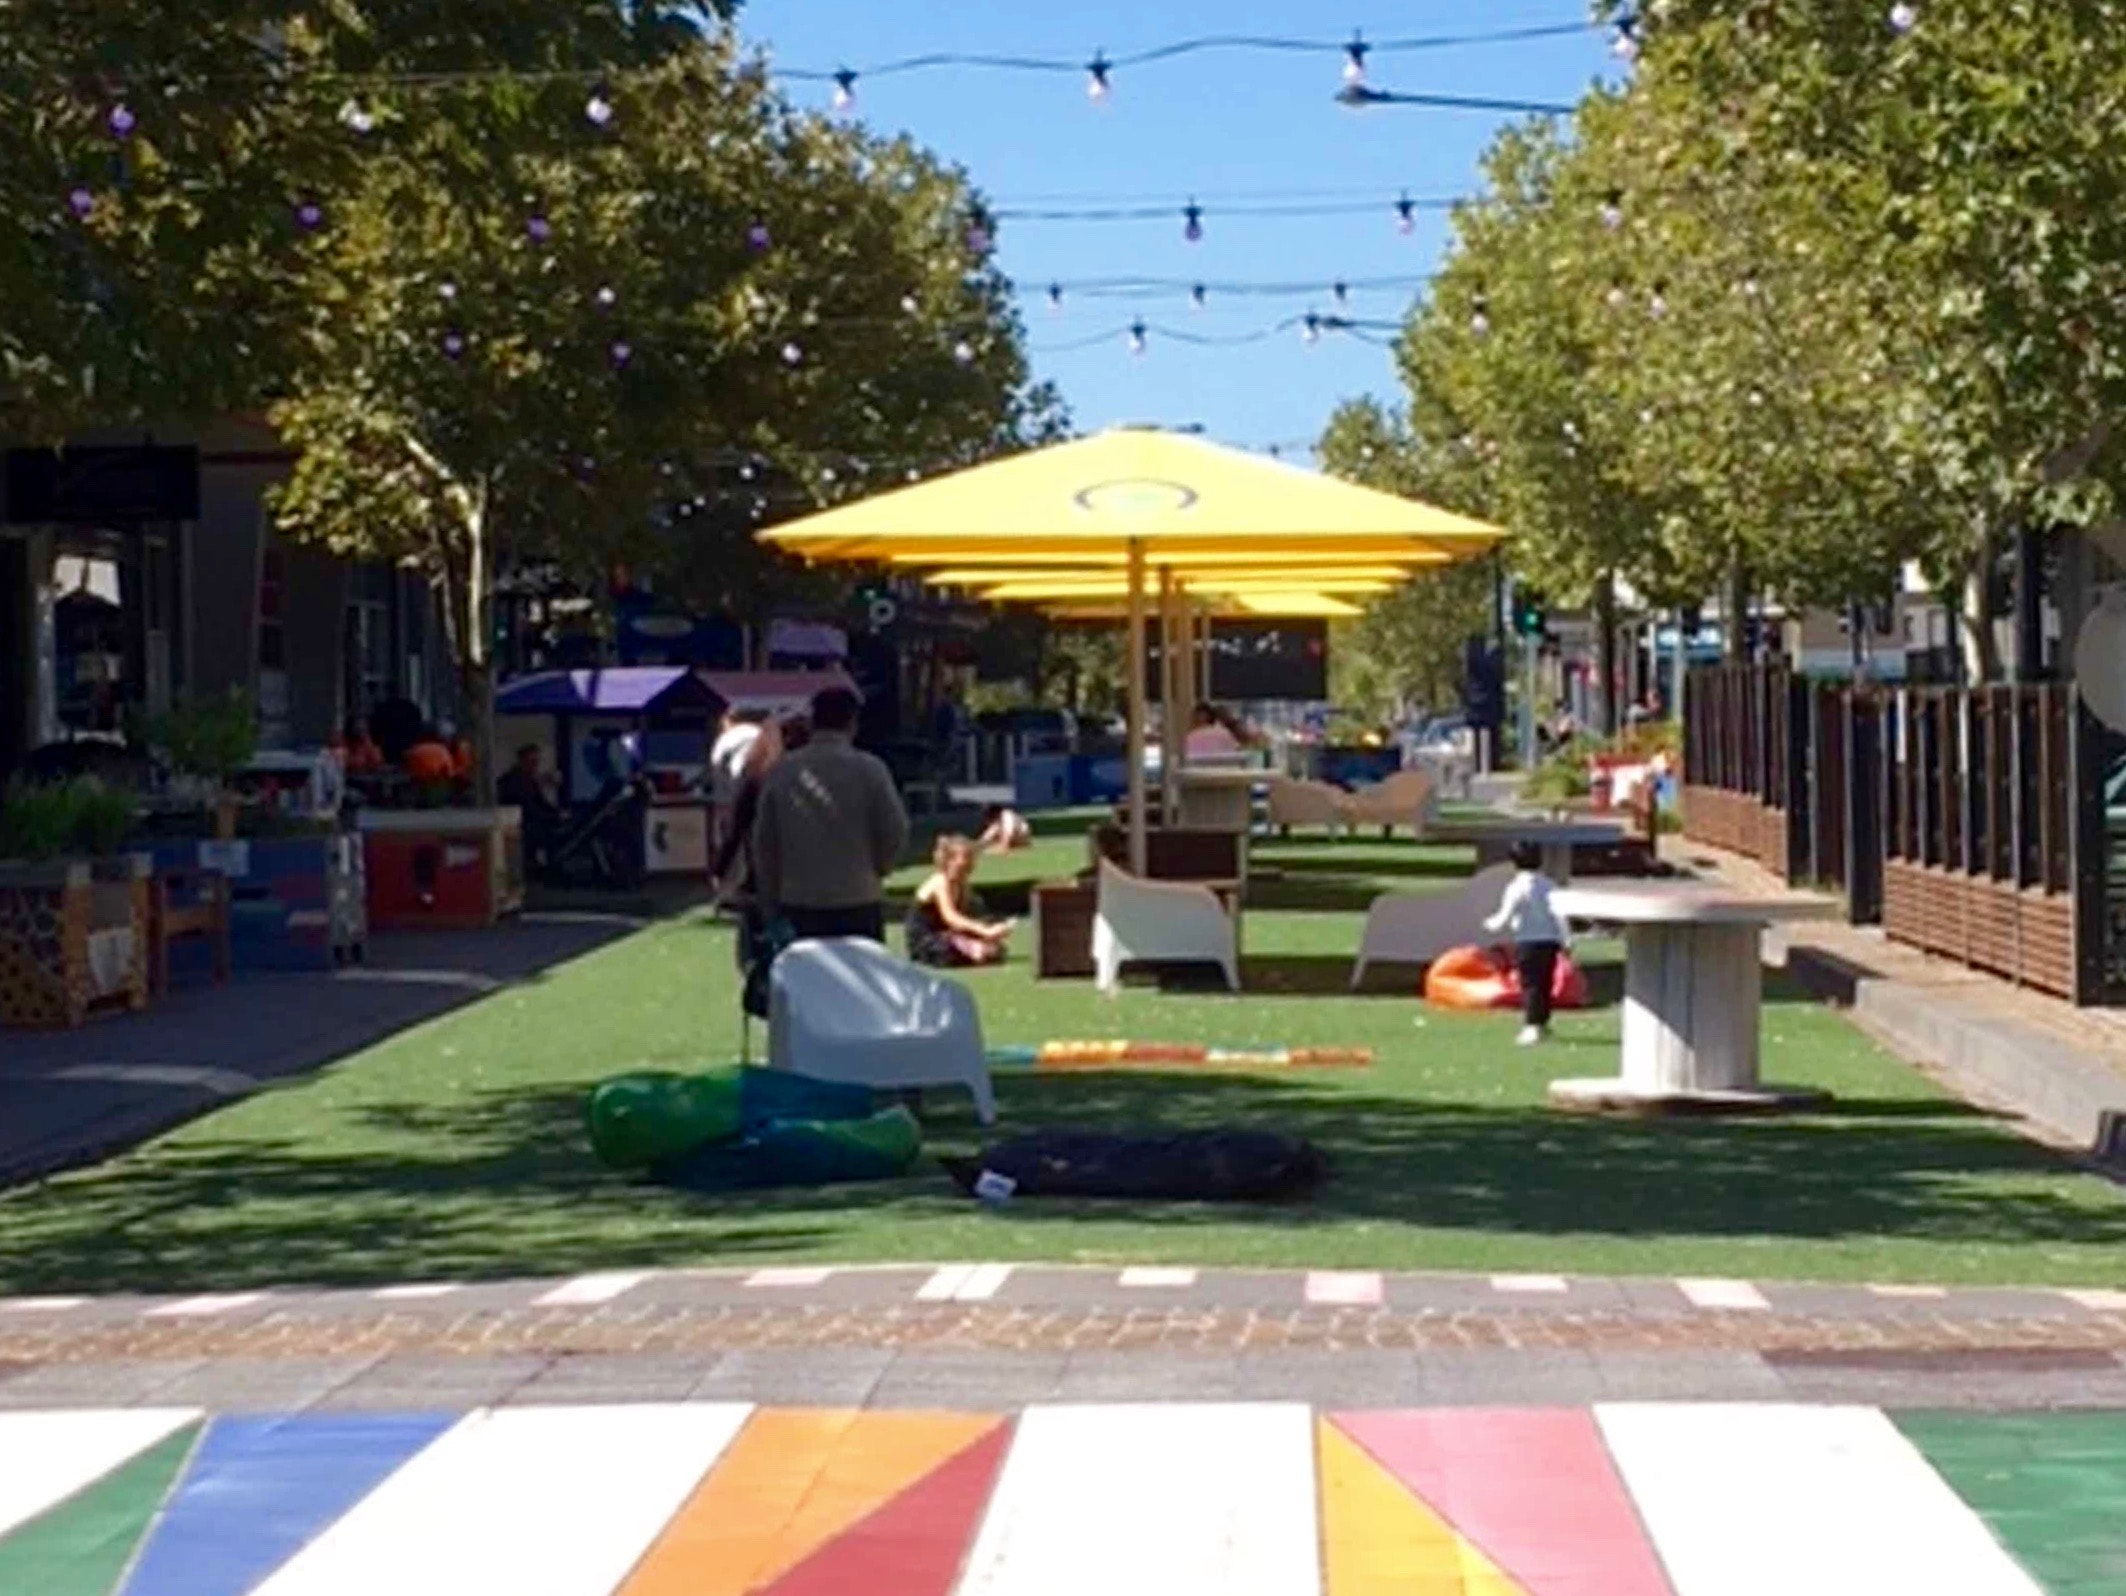 How to turn a housing development into a place where people feel they belong